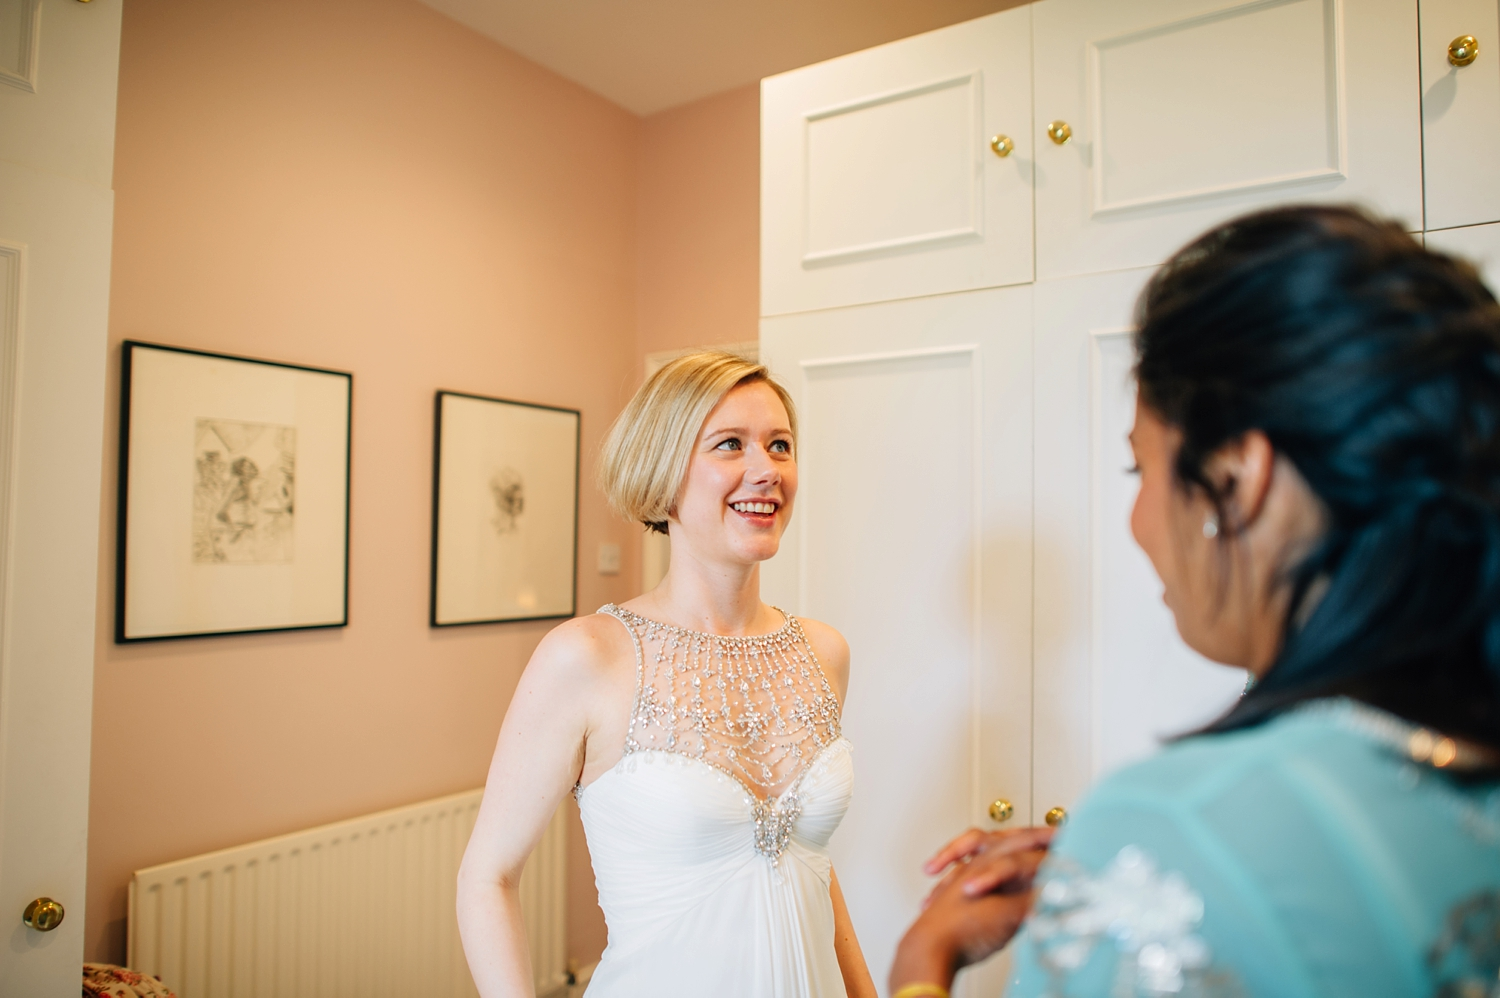 0024-lisa-devine-alternative-wedding-photography-london-hackney-dalston-london-photography-townhall-hotel.JPG